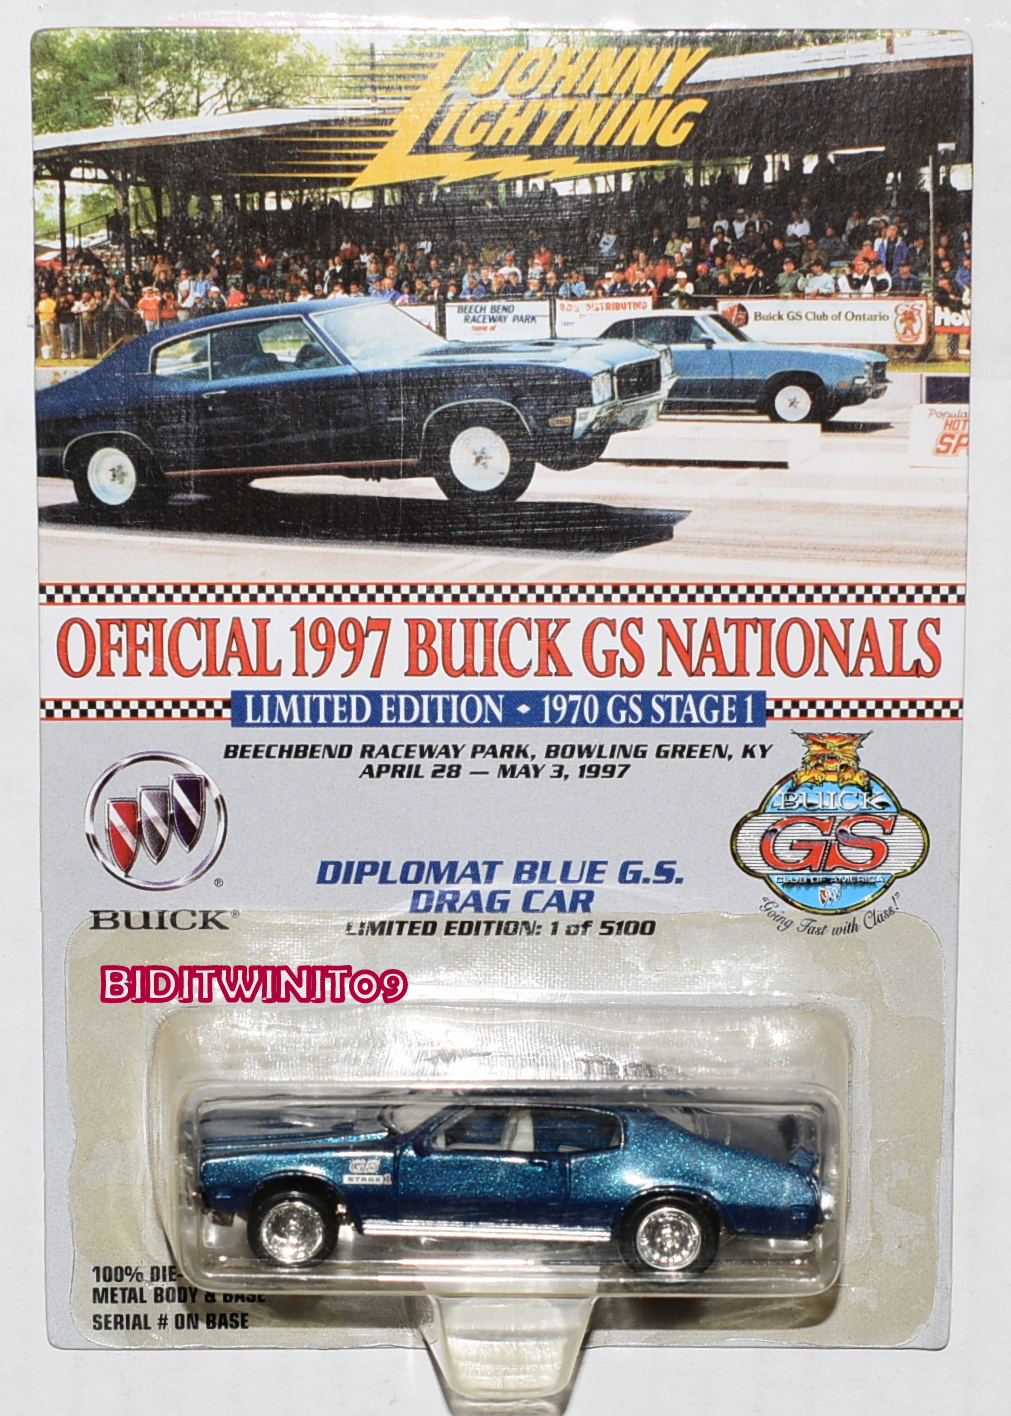 JOHNNY LIGHTNING 1970 STAGE 1 OFFICIAL 1997 BUICK GS NATIONALS E+